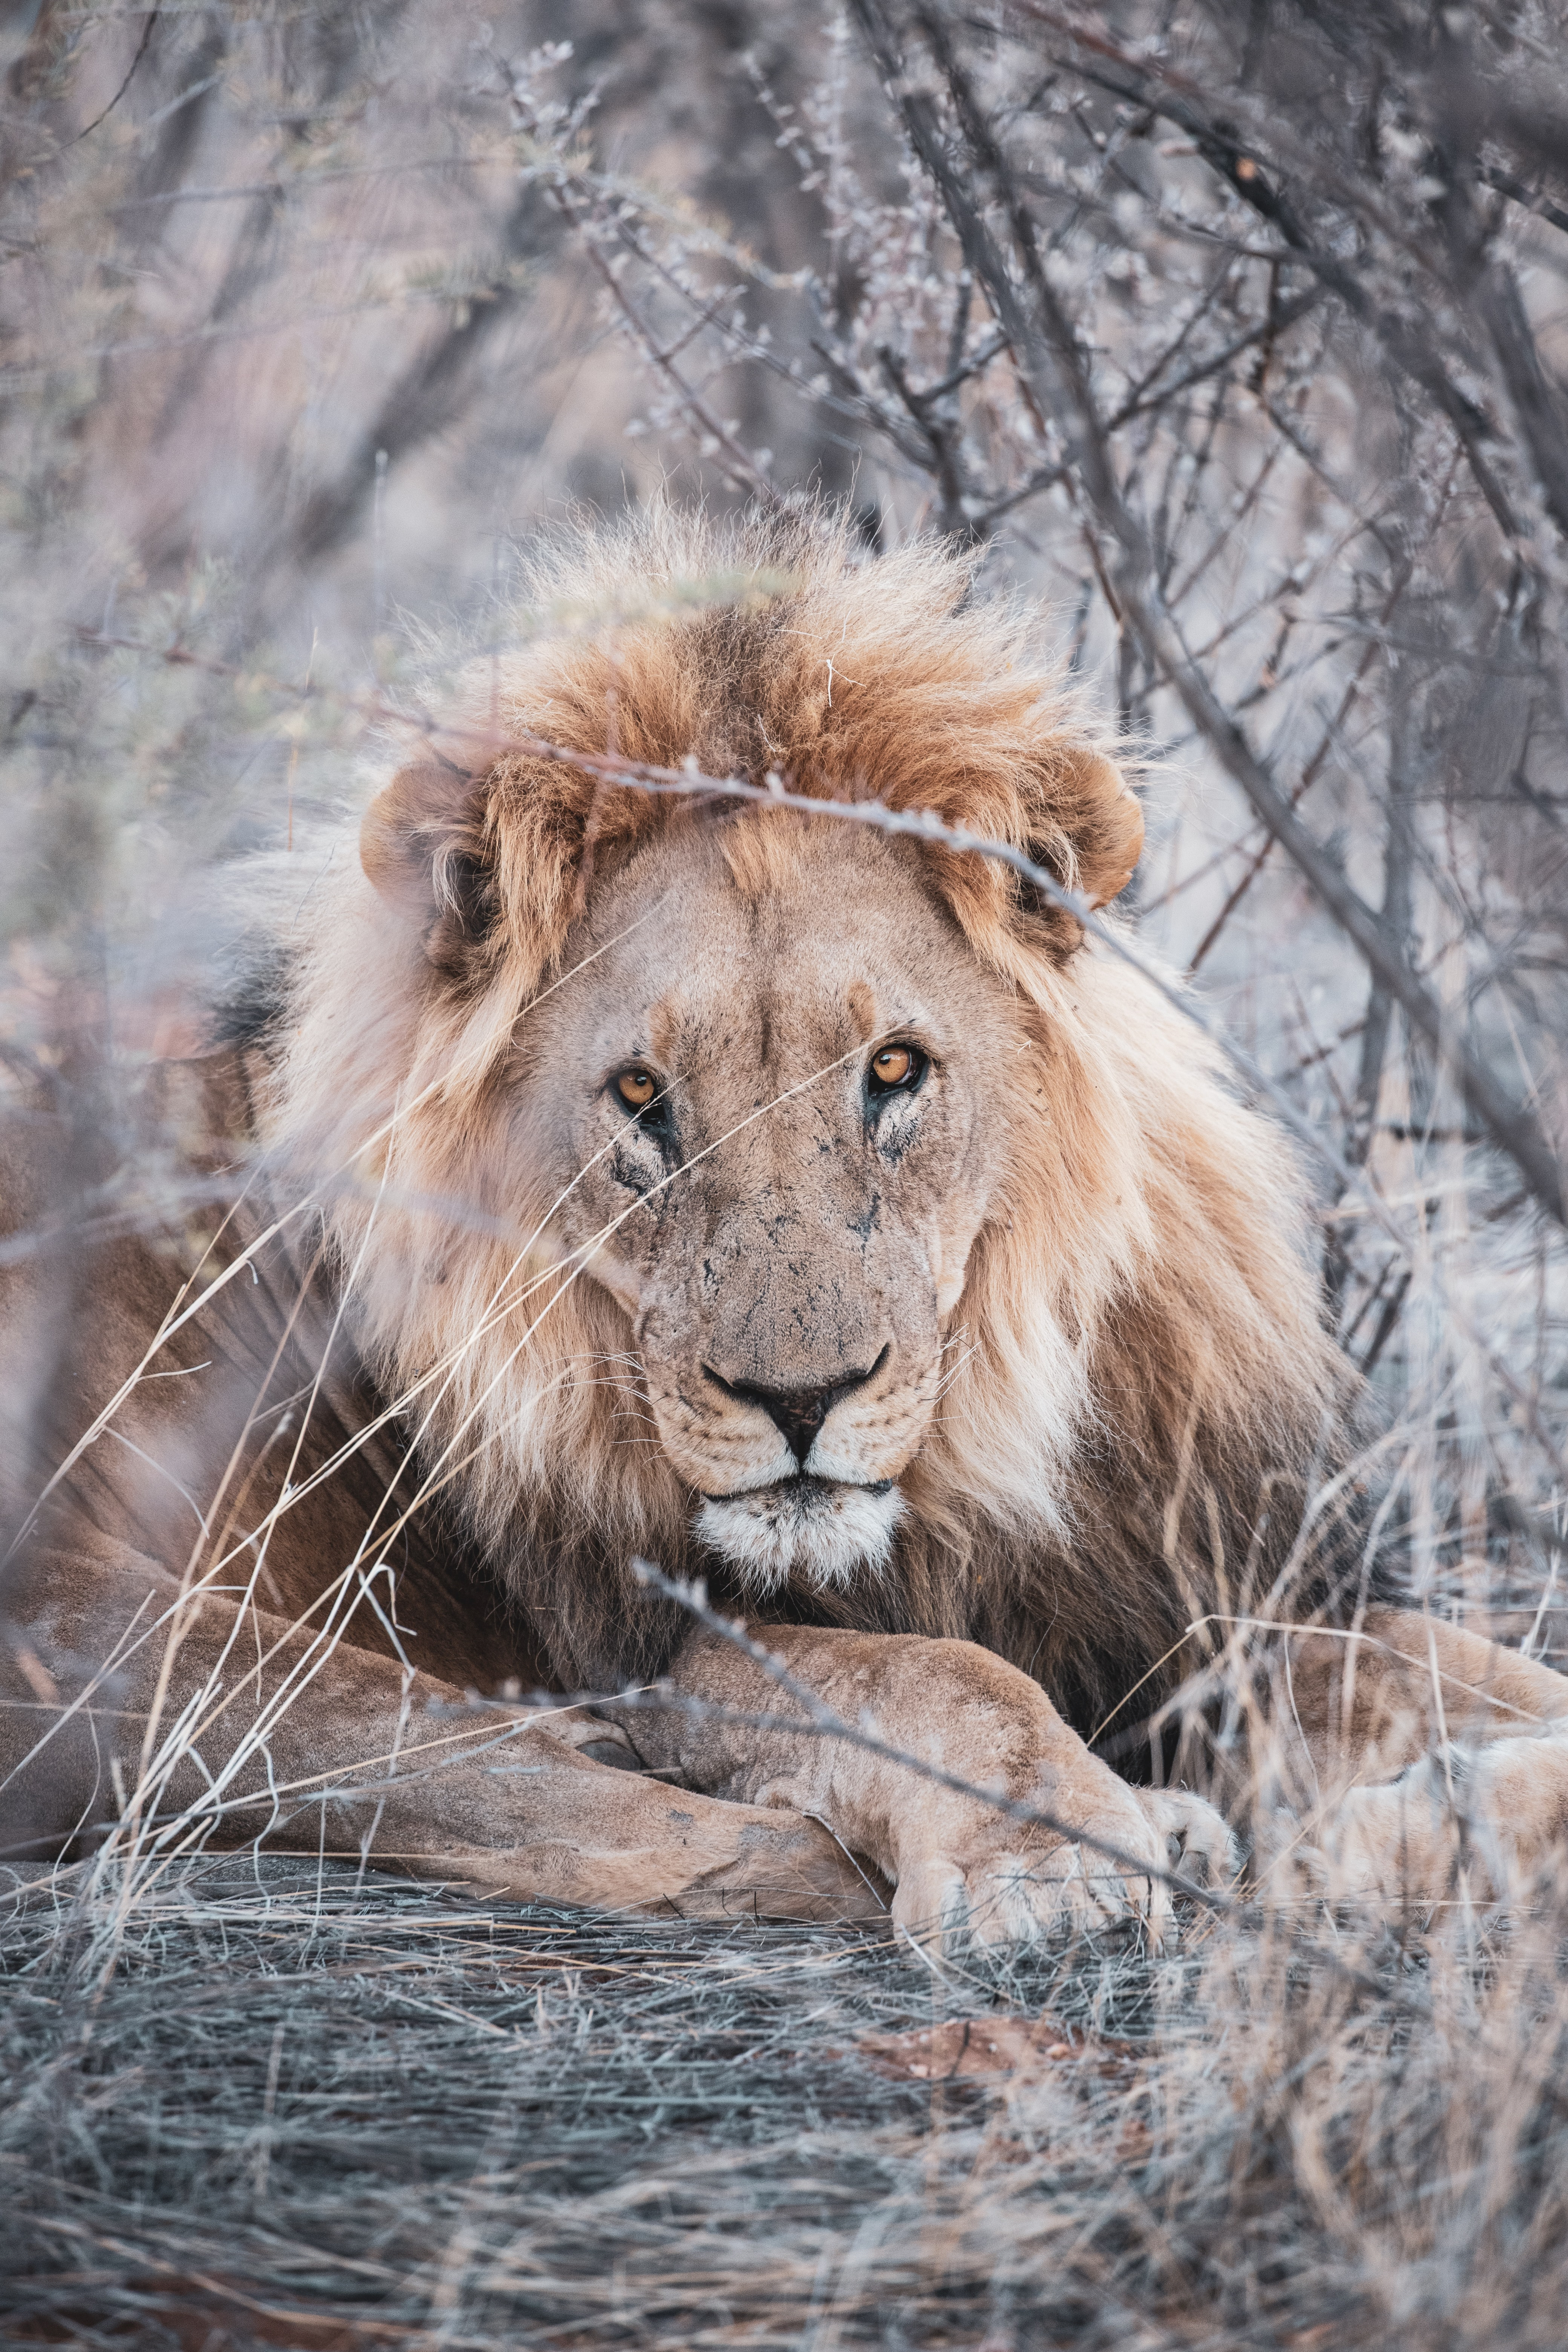 138438 download wallpaper Animals, Lion, Animal, Predator, Wildlife, Branches screensavers and pictures for free